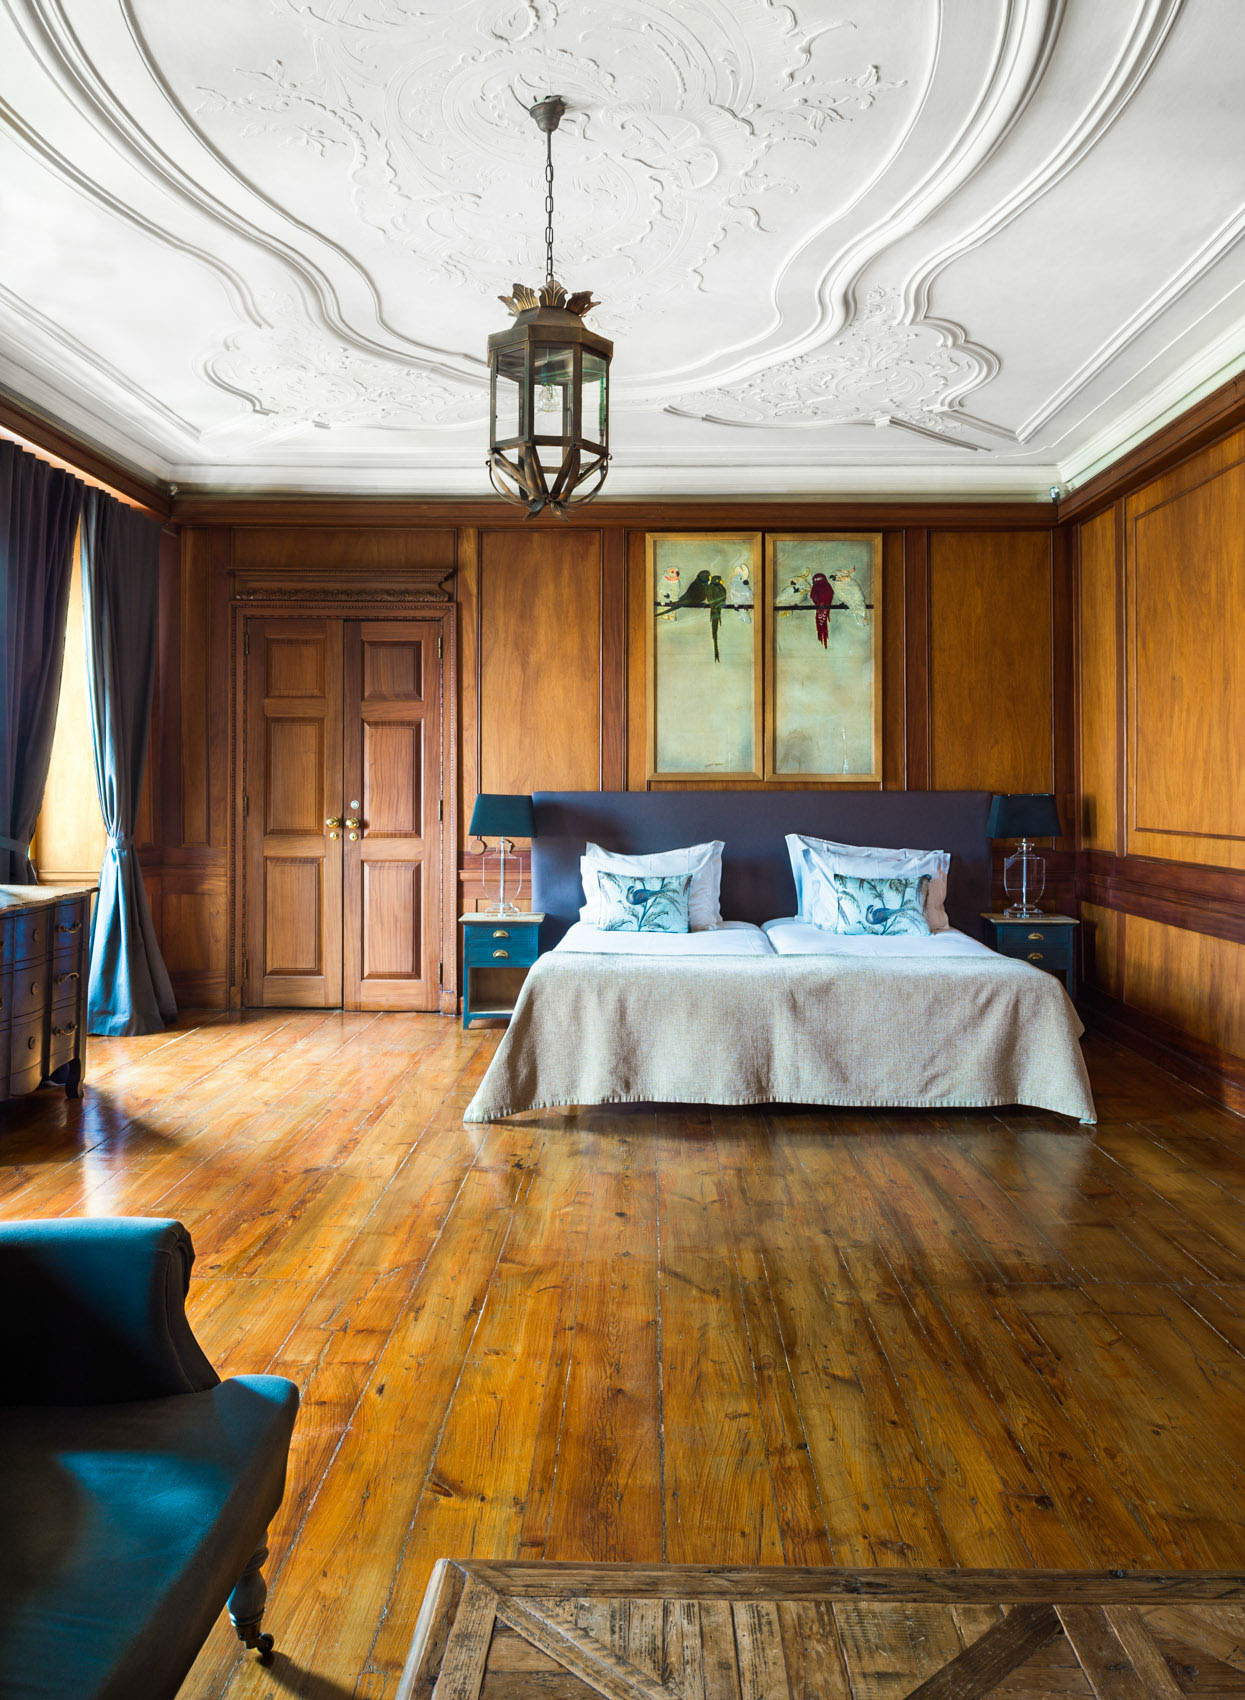 O18-550 Suite at Palacio Ramhalet, Lisbon